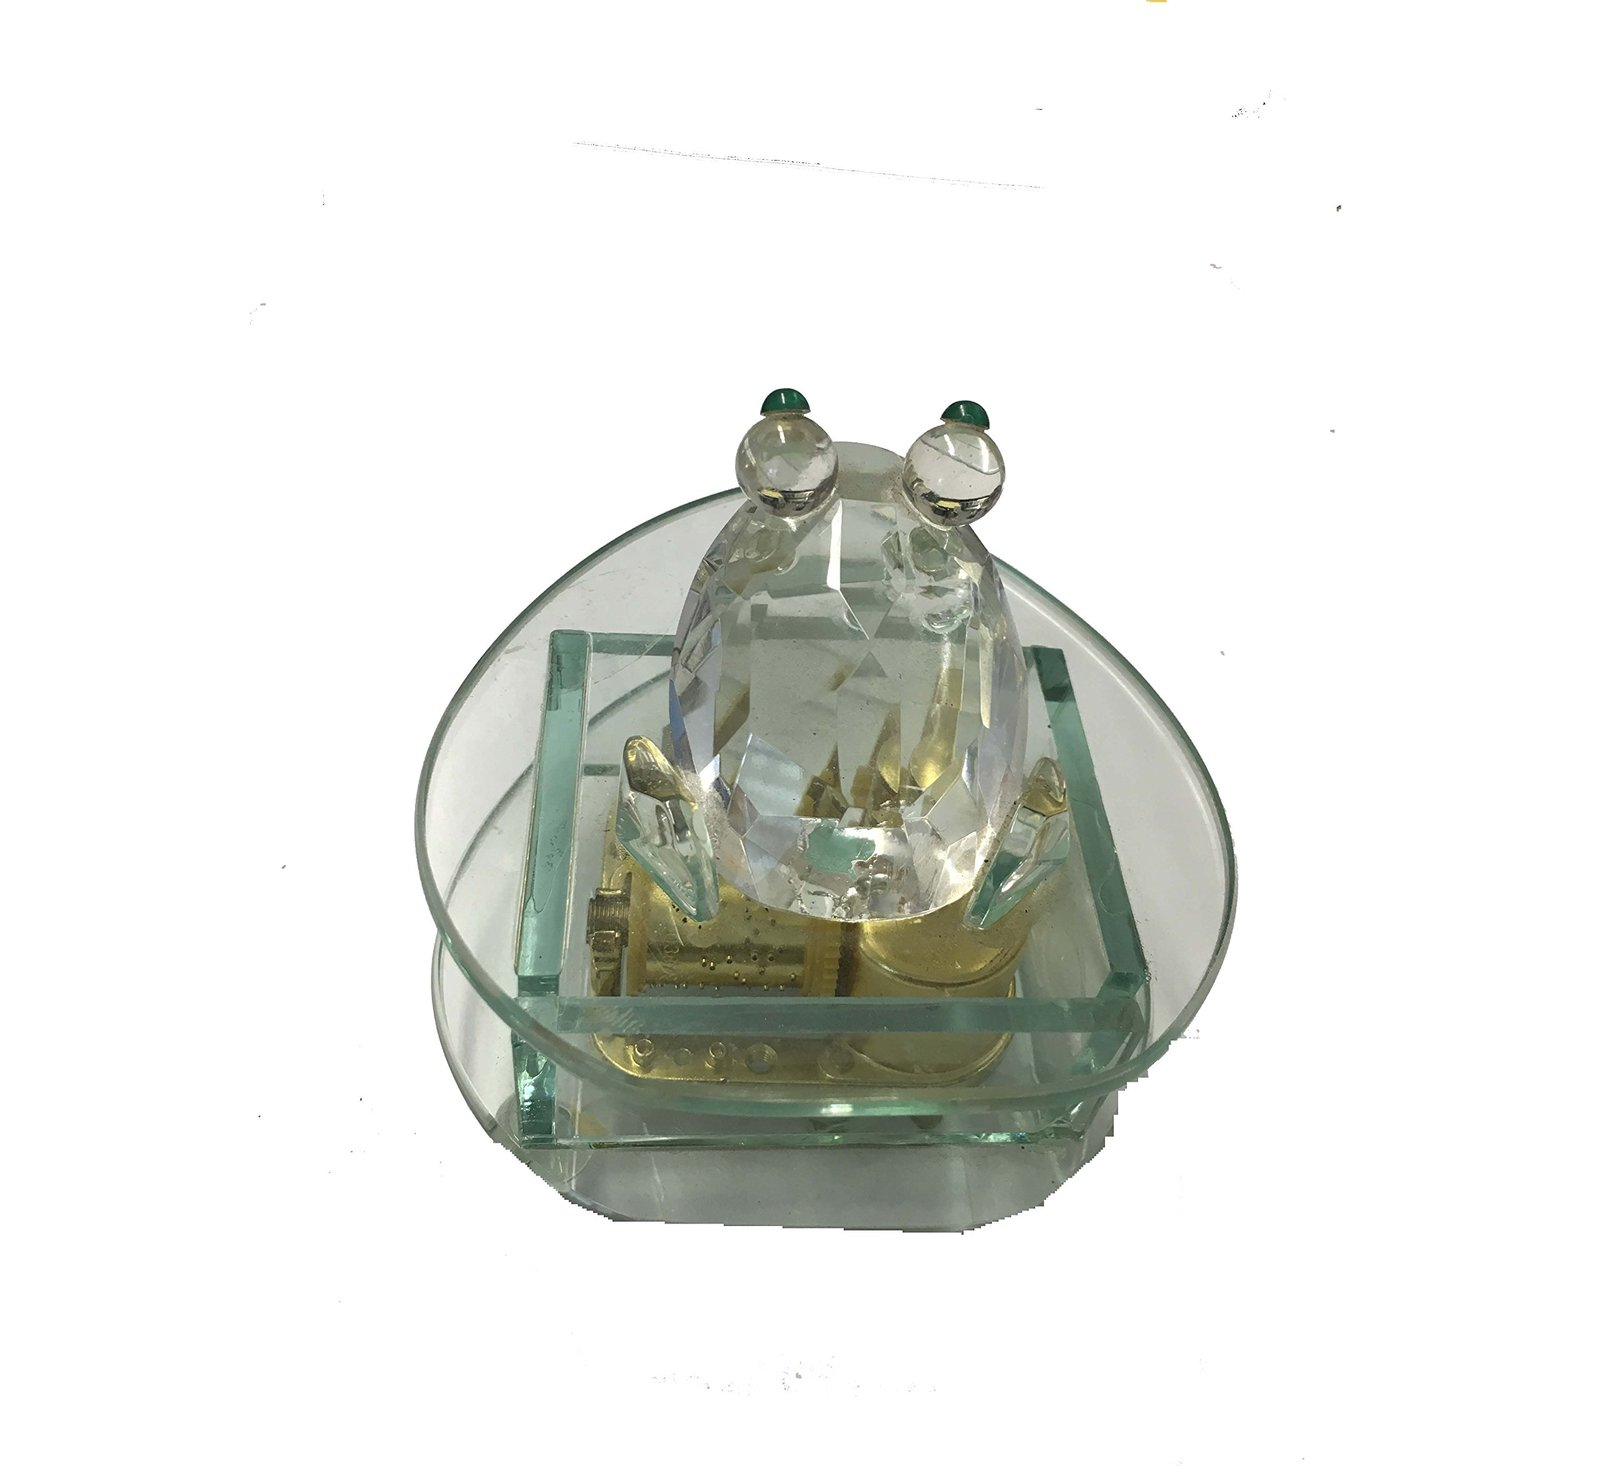 Primary image for GLASS MUSICAL DECORATIVE ORNAMENT WITH A FROG ON TOP